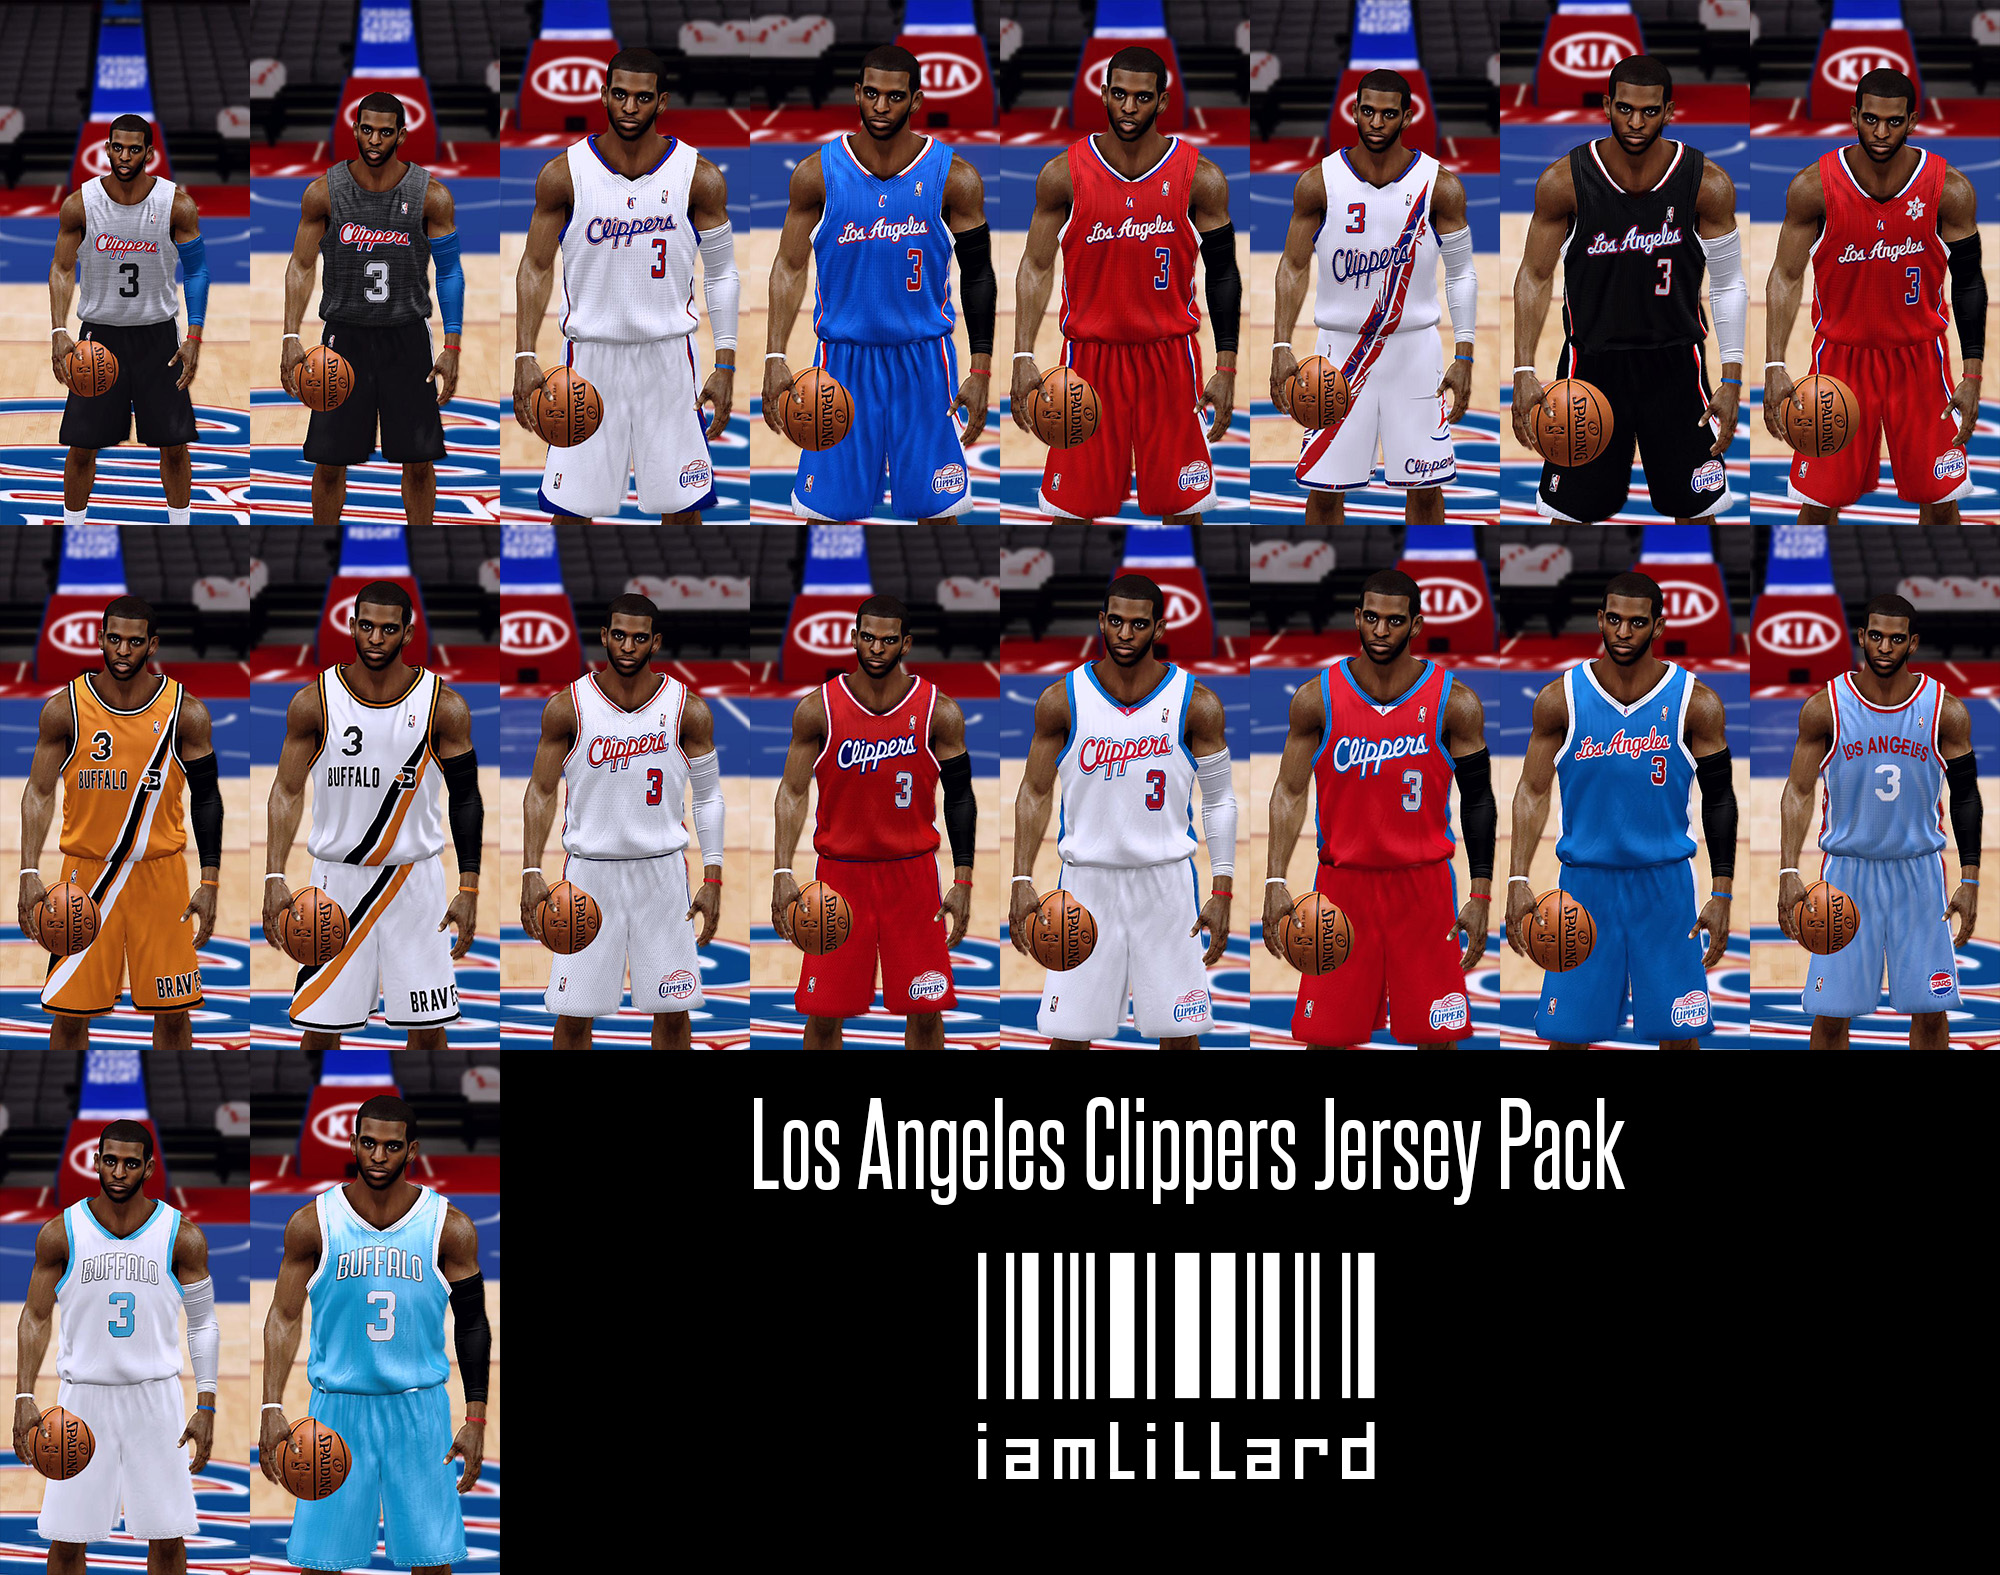 UJP Los Angeles Clippers Jersey